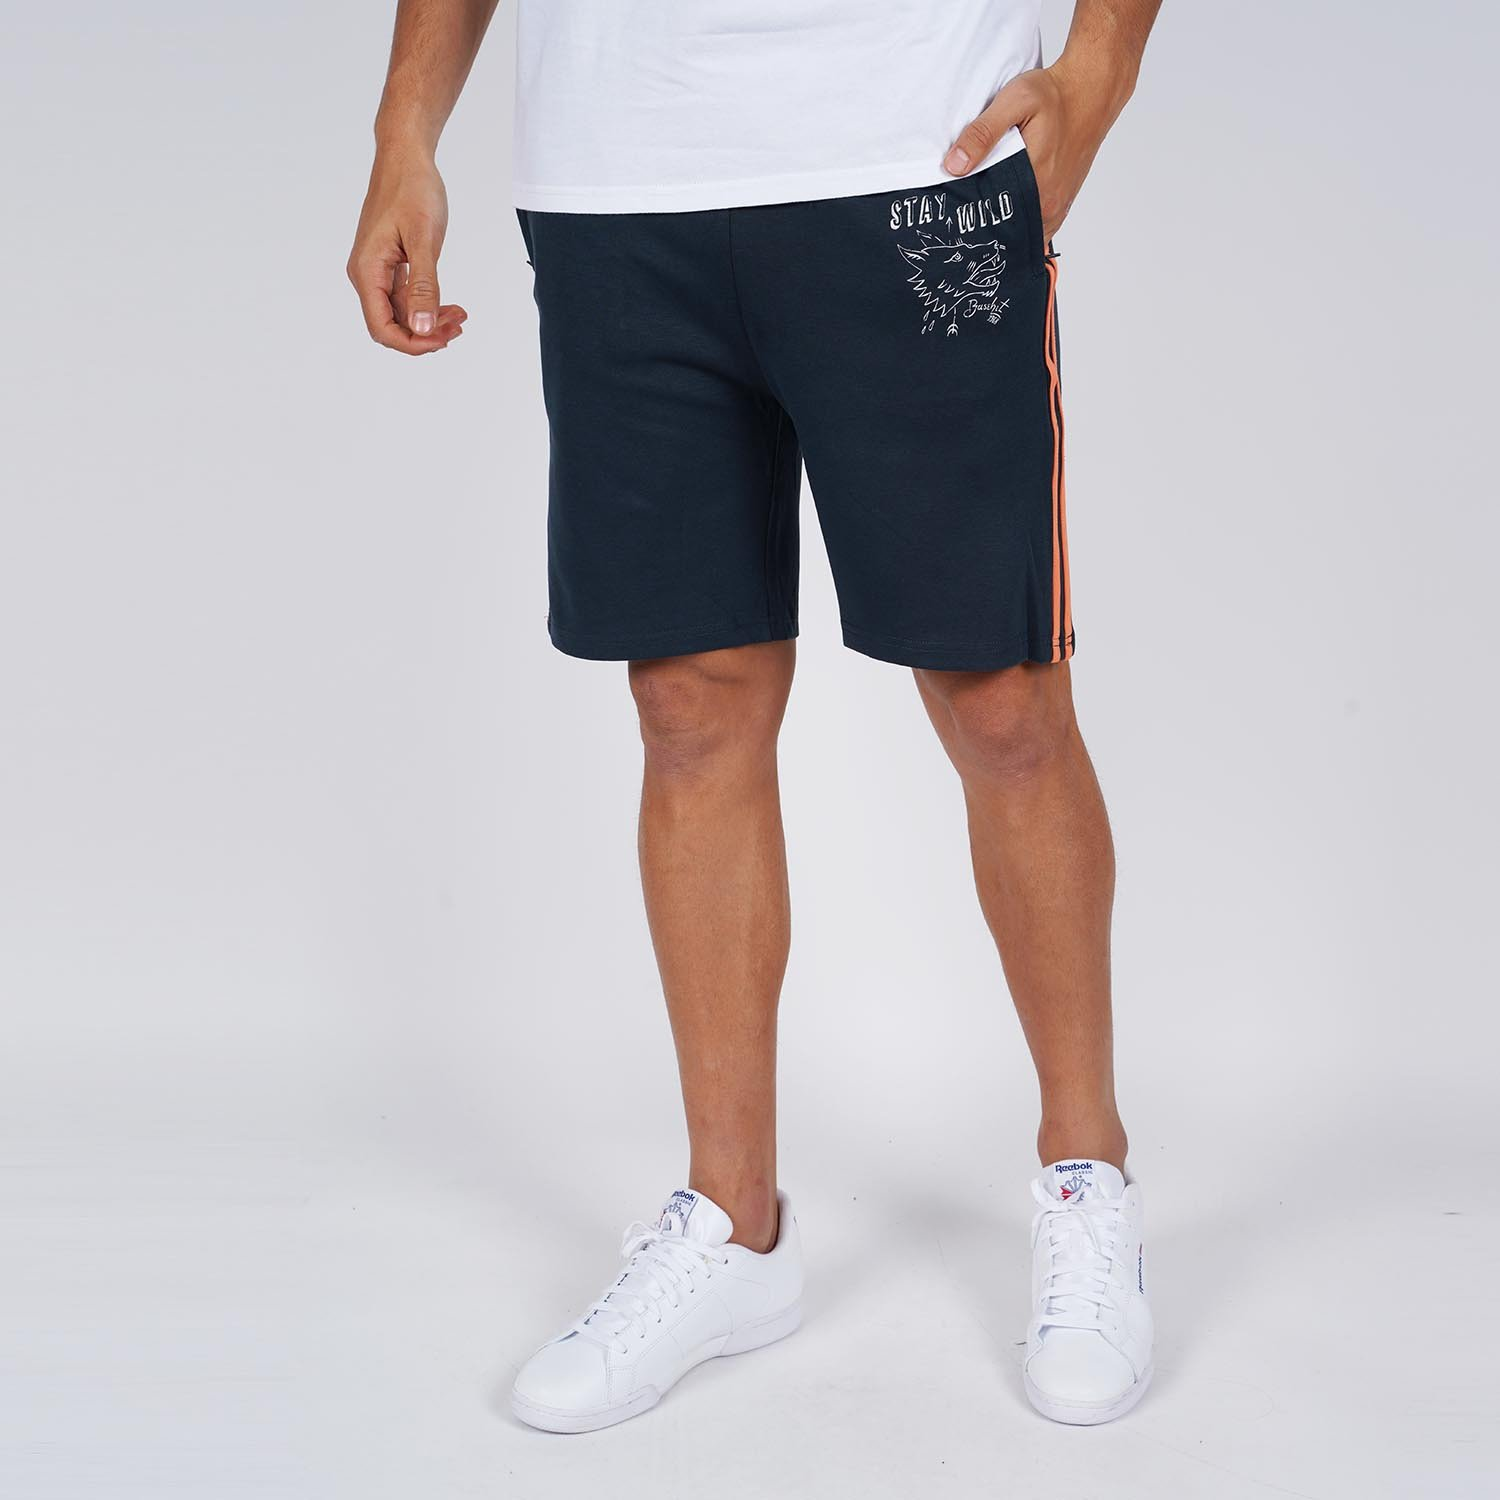 Basehit Men's Track Shorts (9000050786_45121)